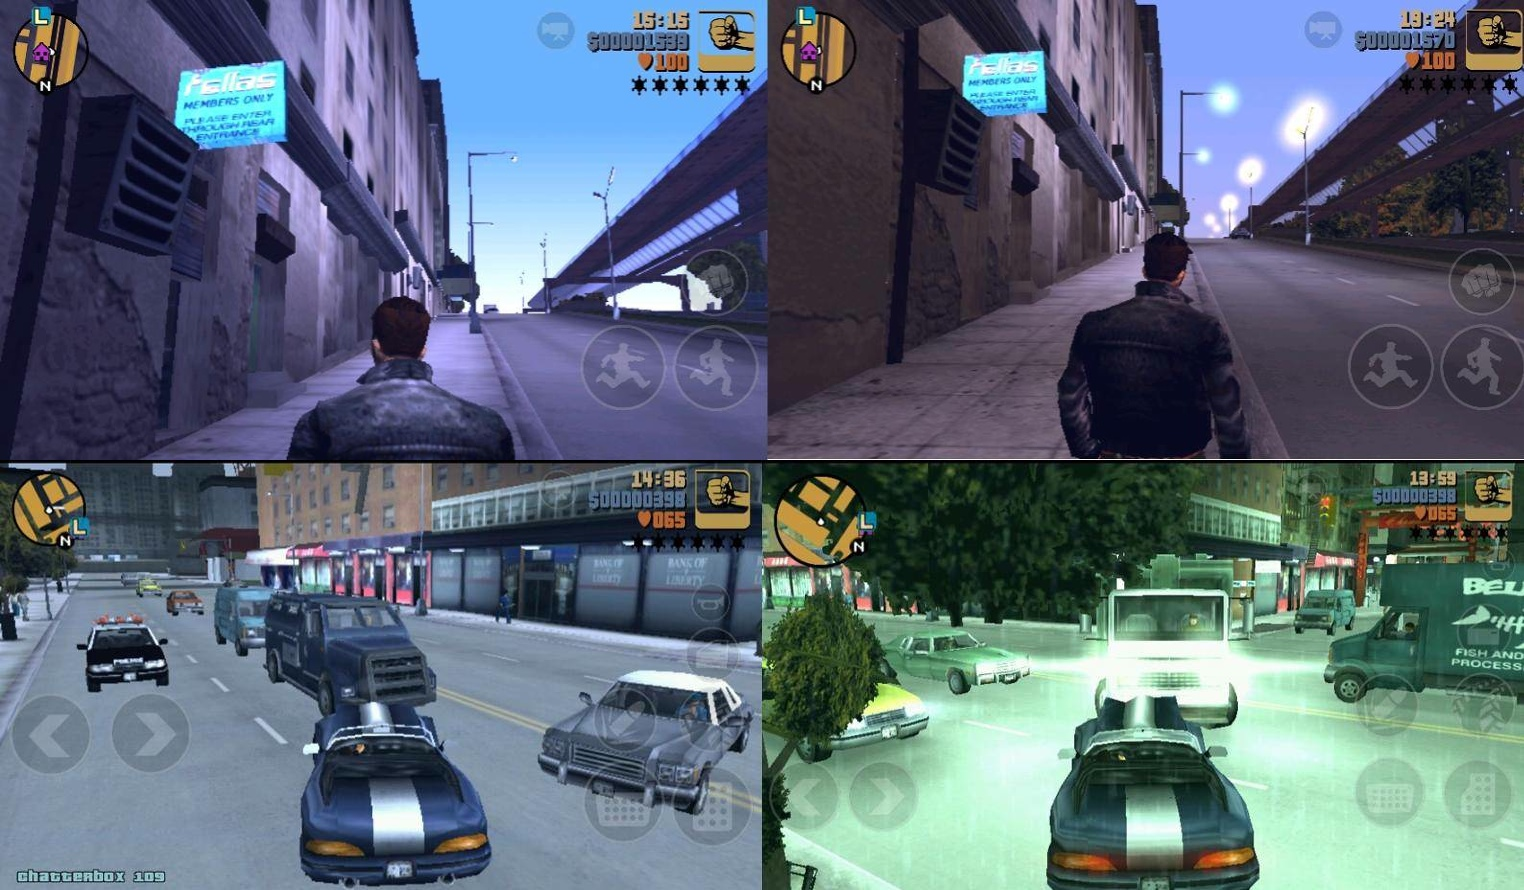 Download GTA 5 PPSSPP ISO Game File for Android [PSP GTA 5]